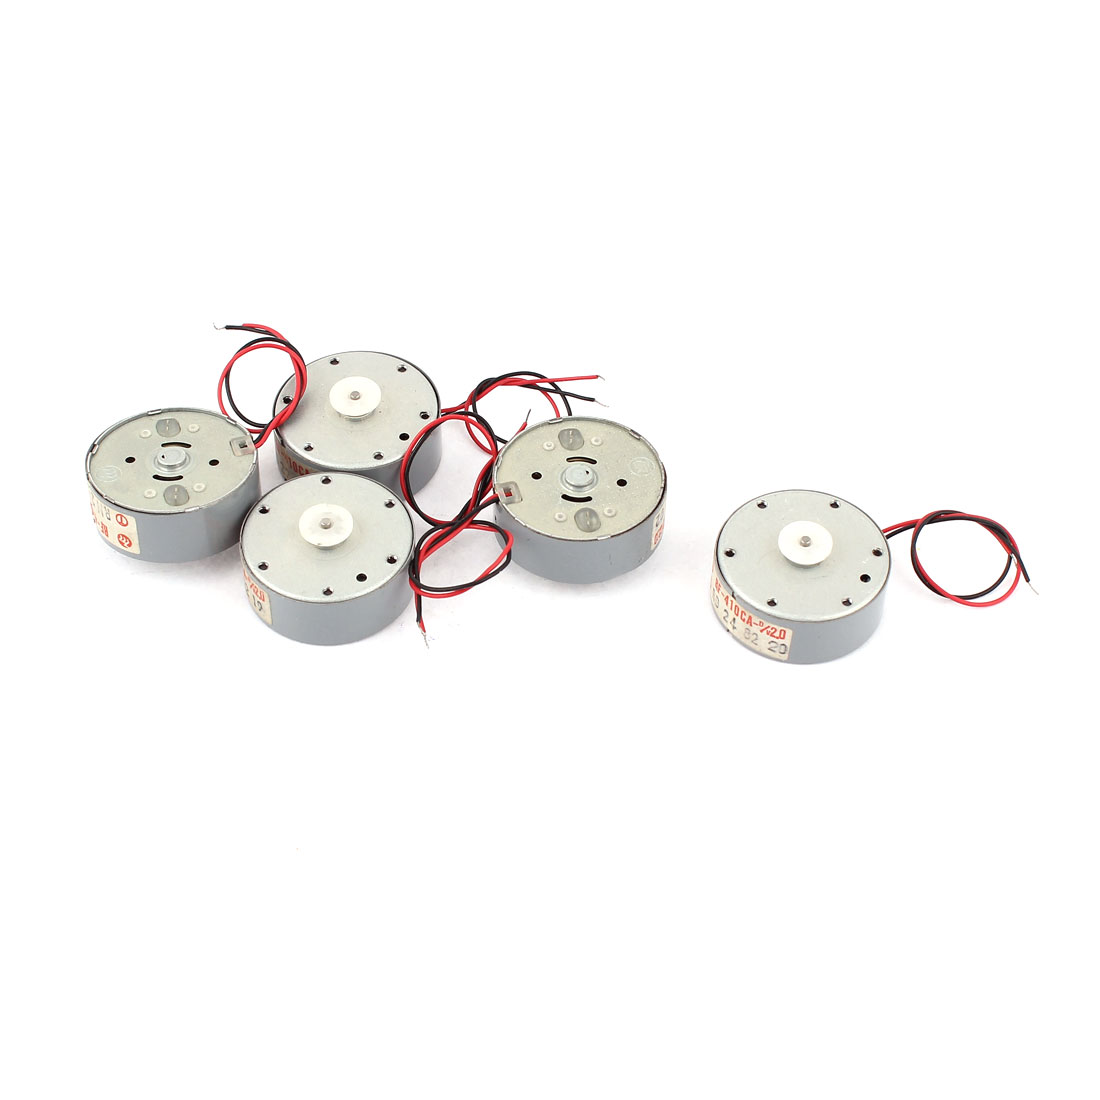 5Pcs DC 2V 3800RPM 1.5mm Dia Shaft DC Motor for Toys Walkman Repeater